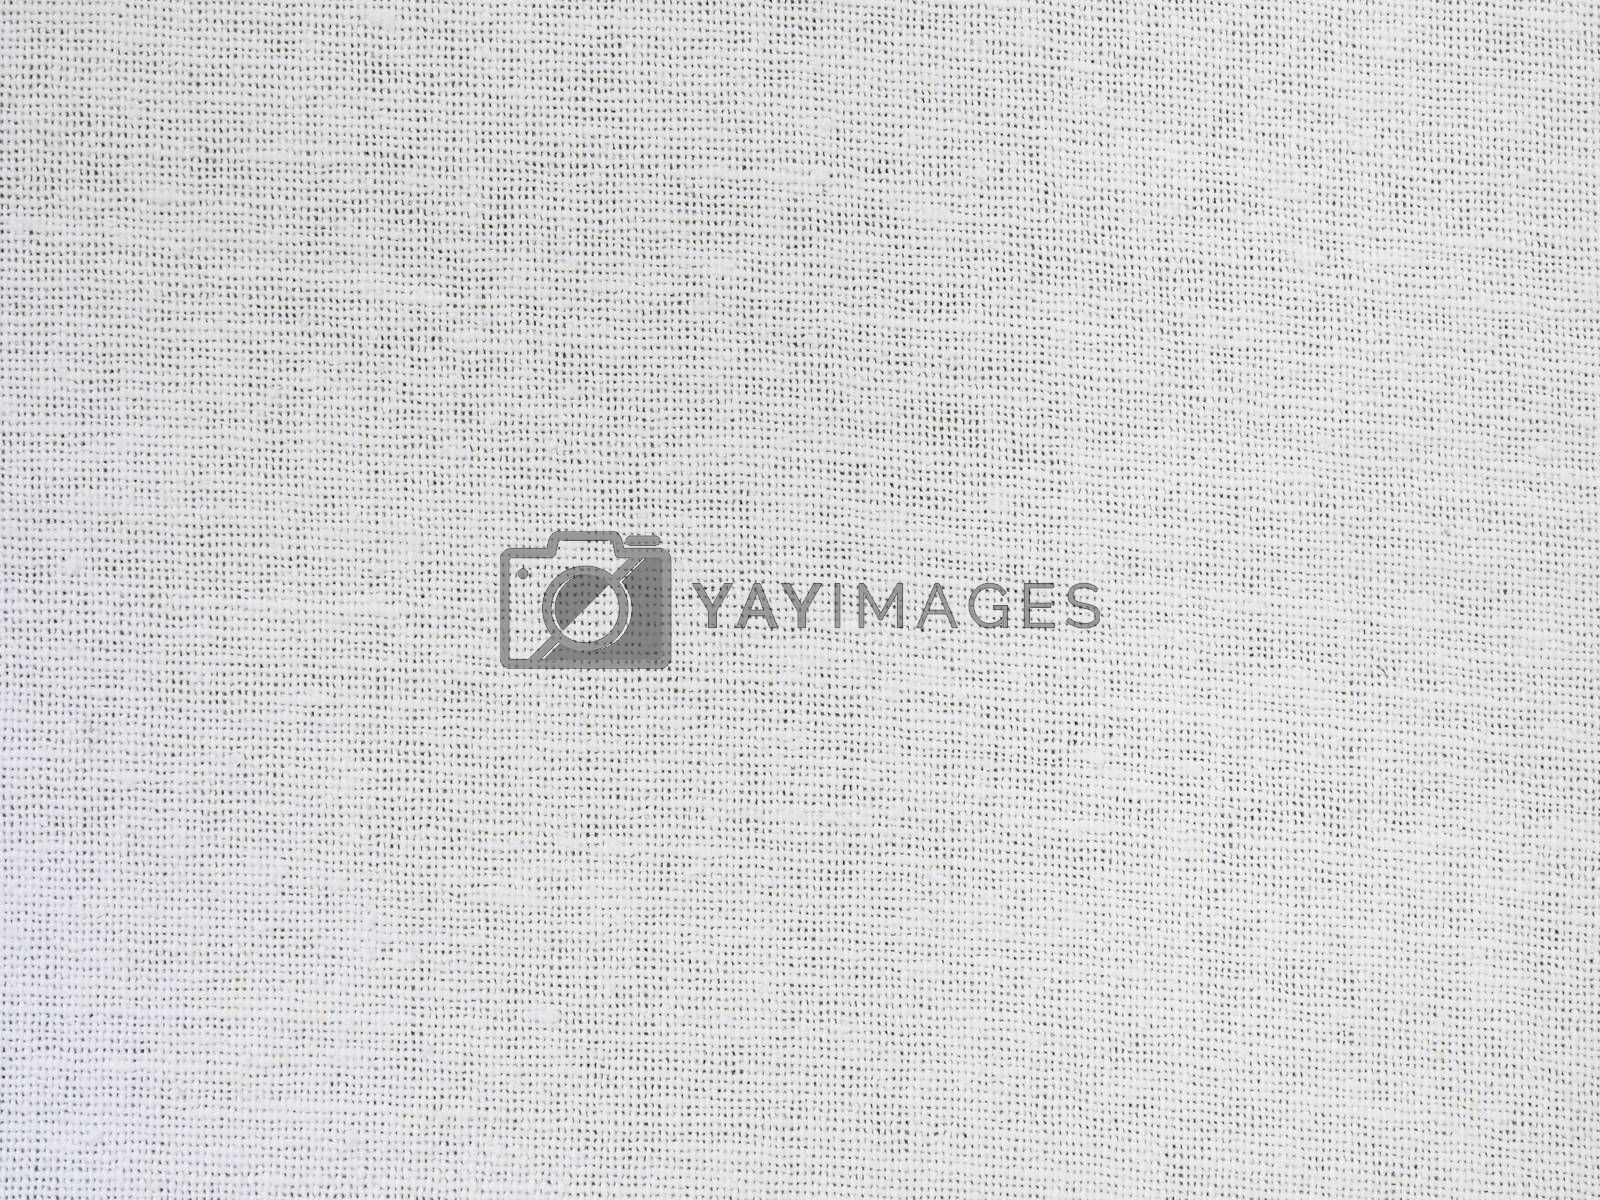 White cotton cloth to use as a background.